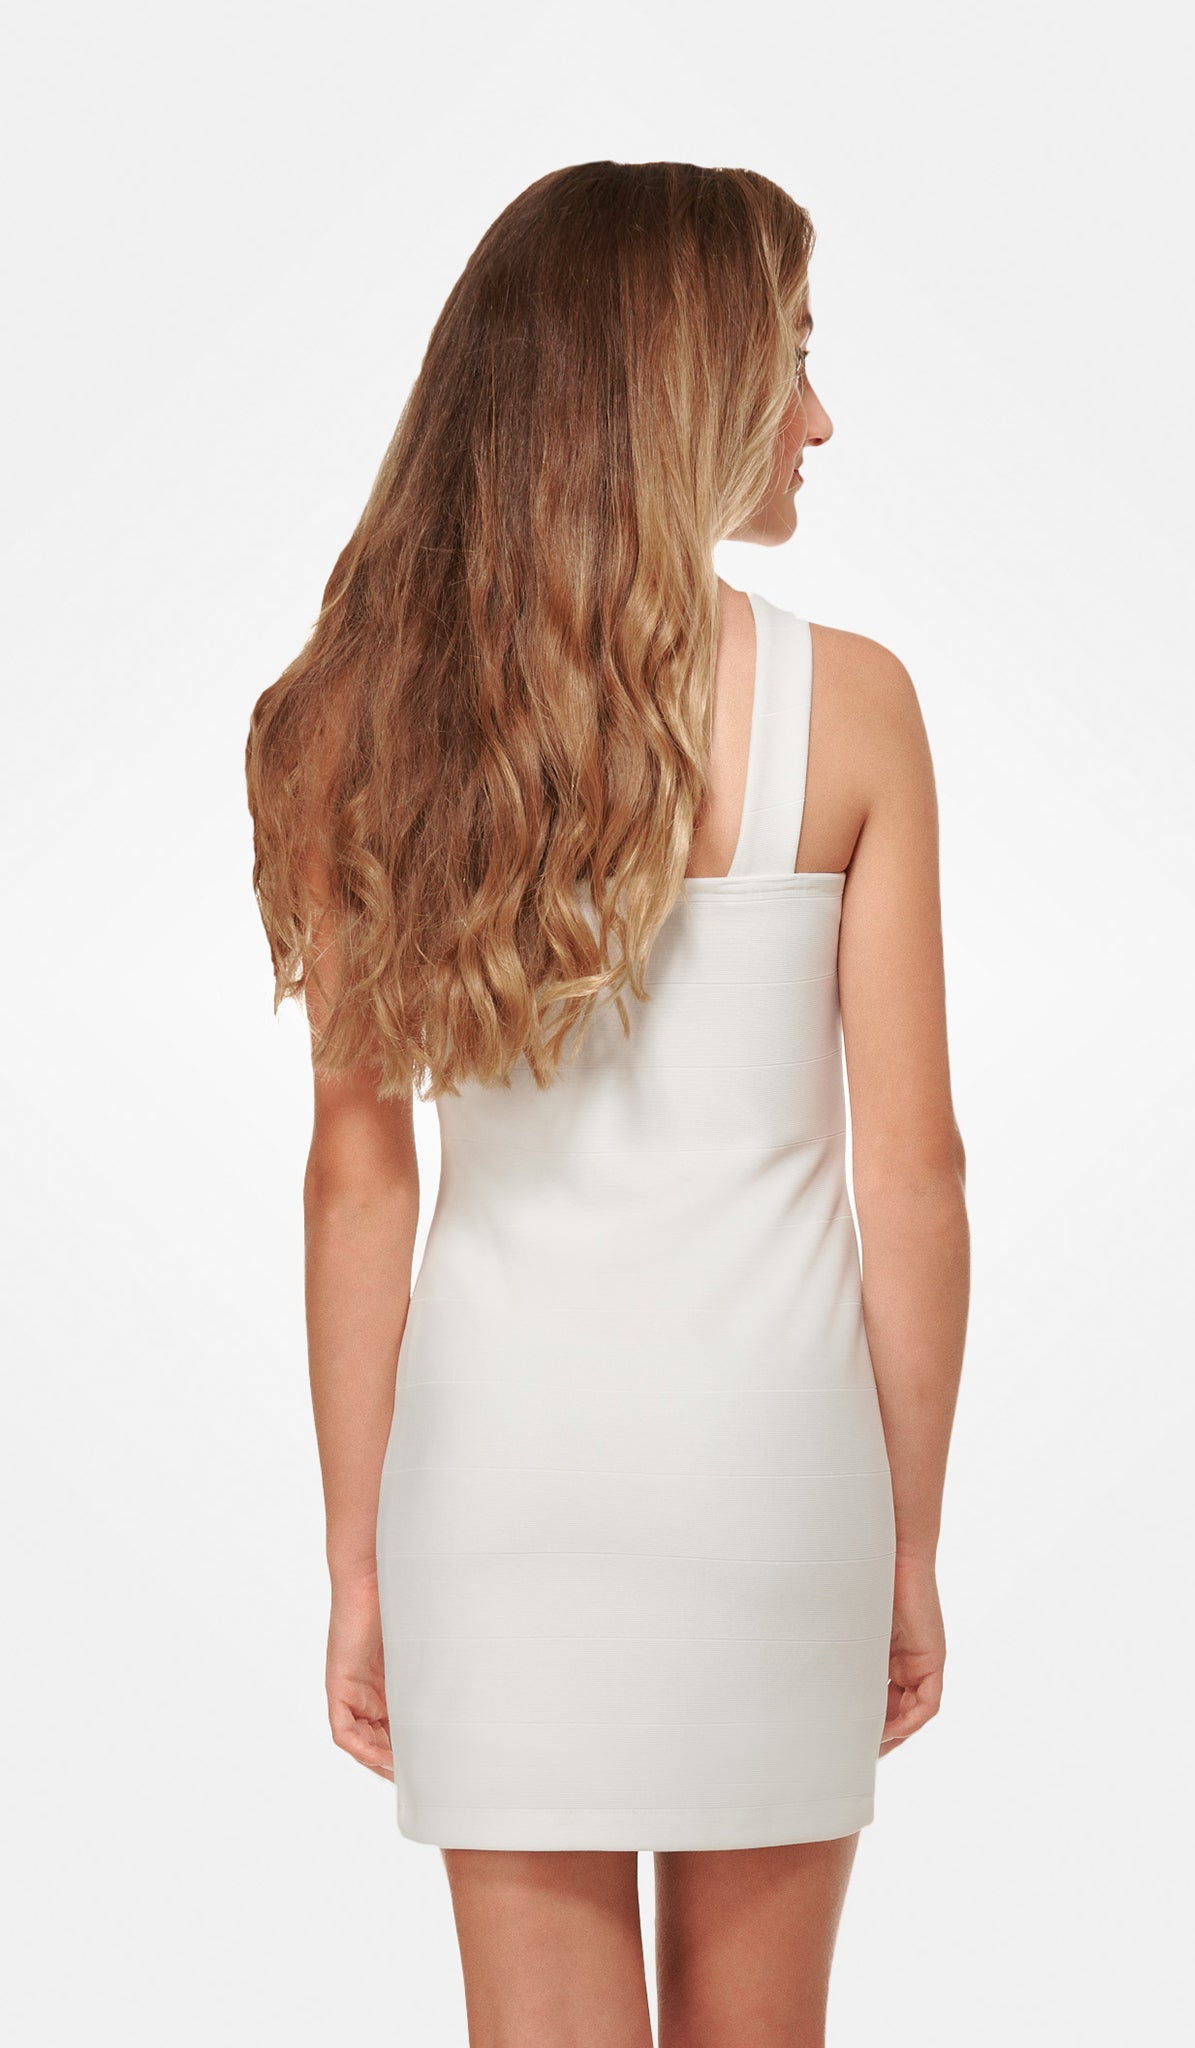 The Sally Miller Sierra Dress Juniors - Ivory textured knit bodycon v-neck fully lined dress with thick straps